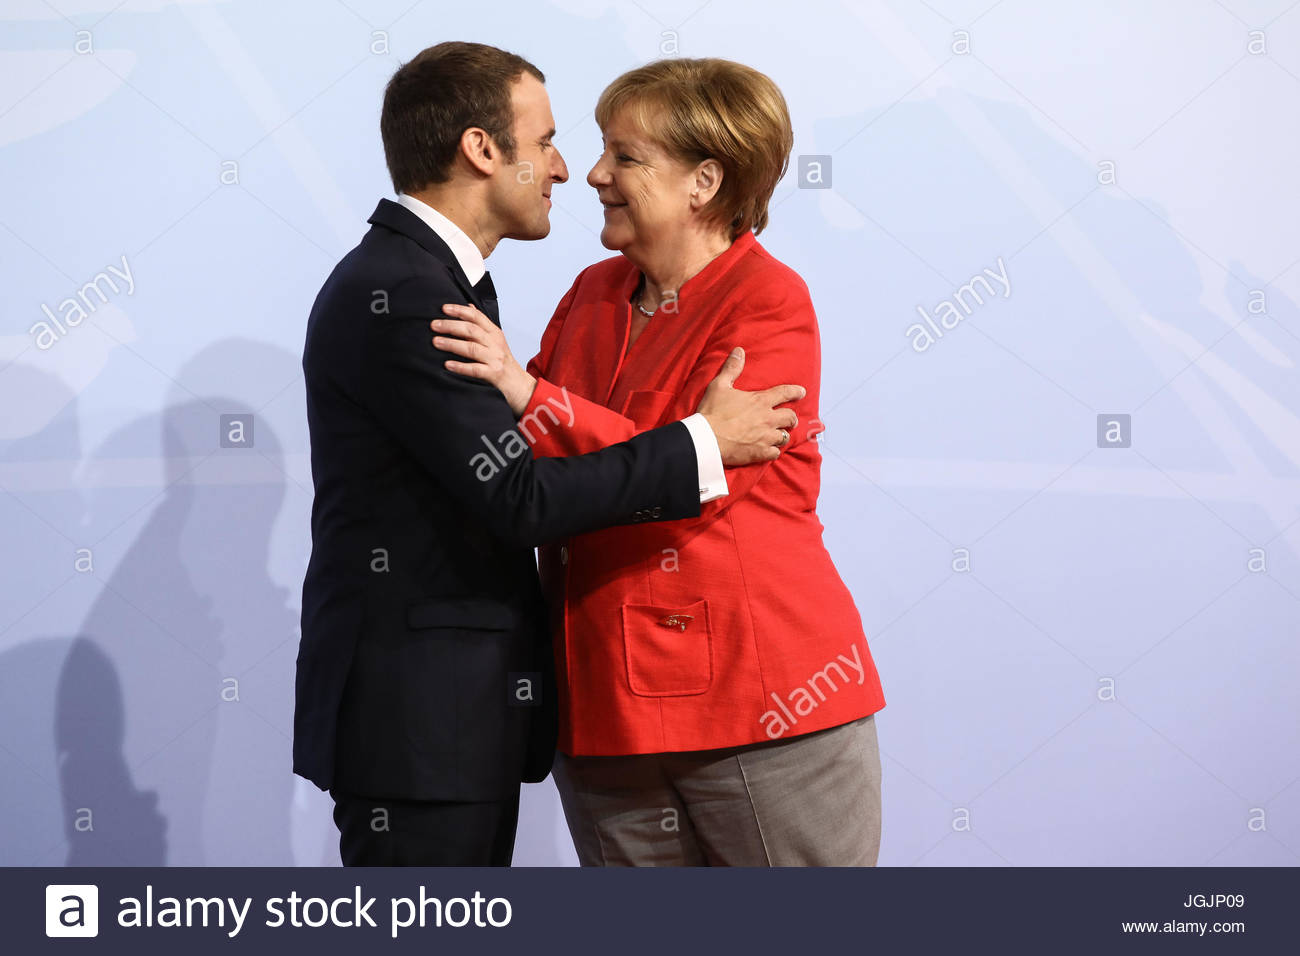 Hamburg, Germany. 7th Jul, 2017. Emmanuel Macron, president of France welcomes by German chancellor Angela Merkel - Stock Image